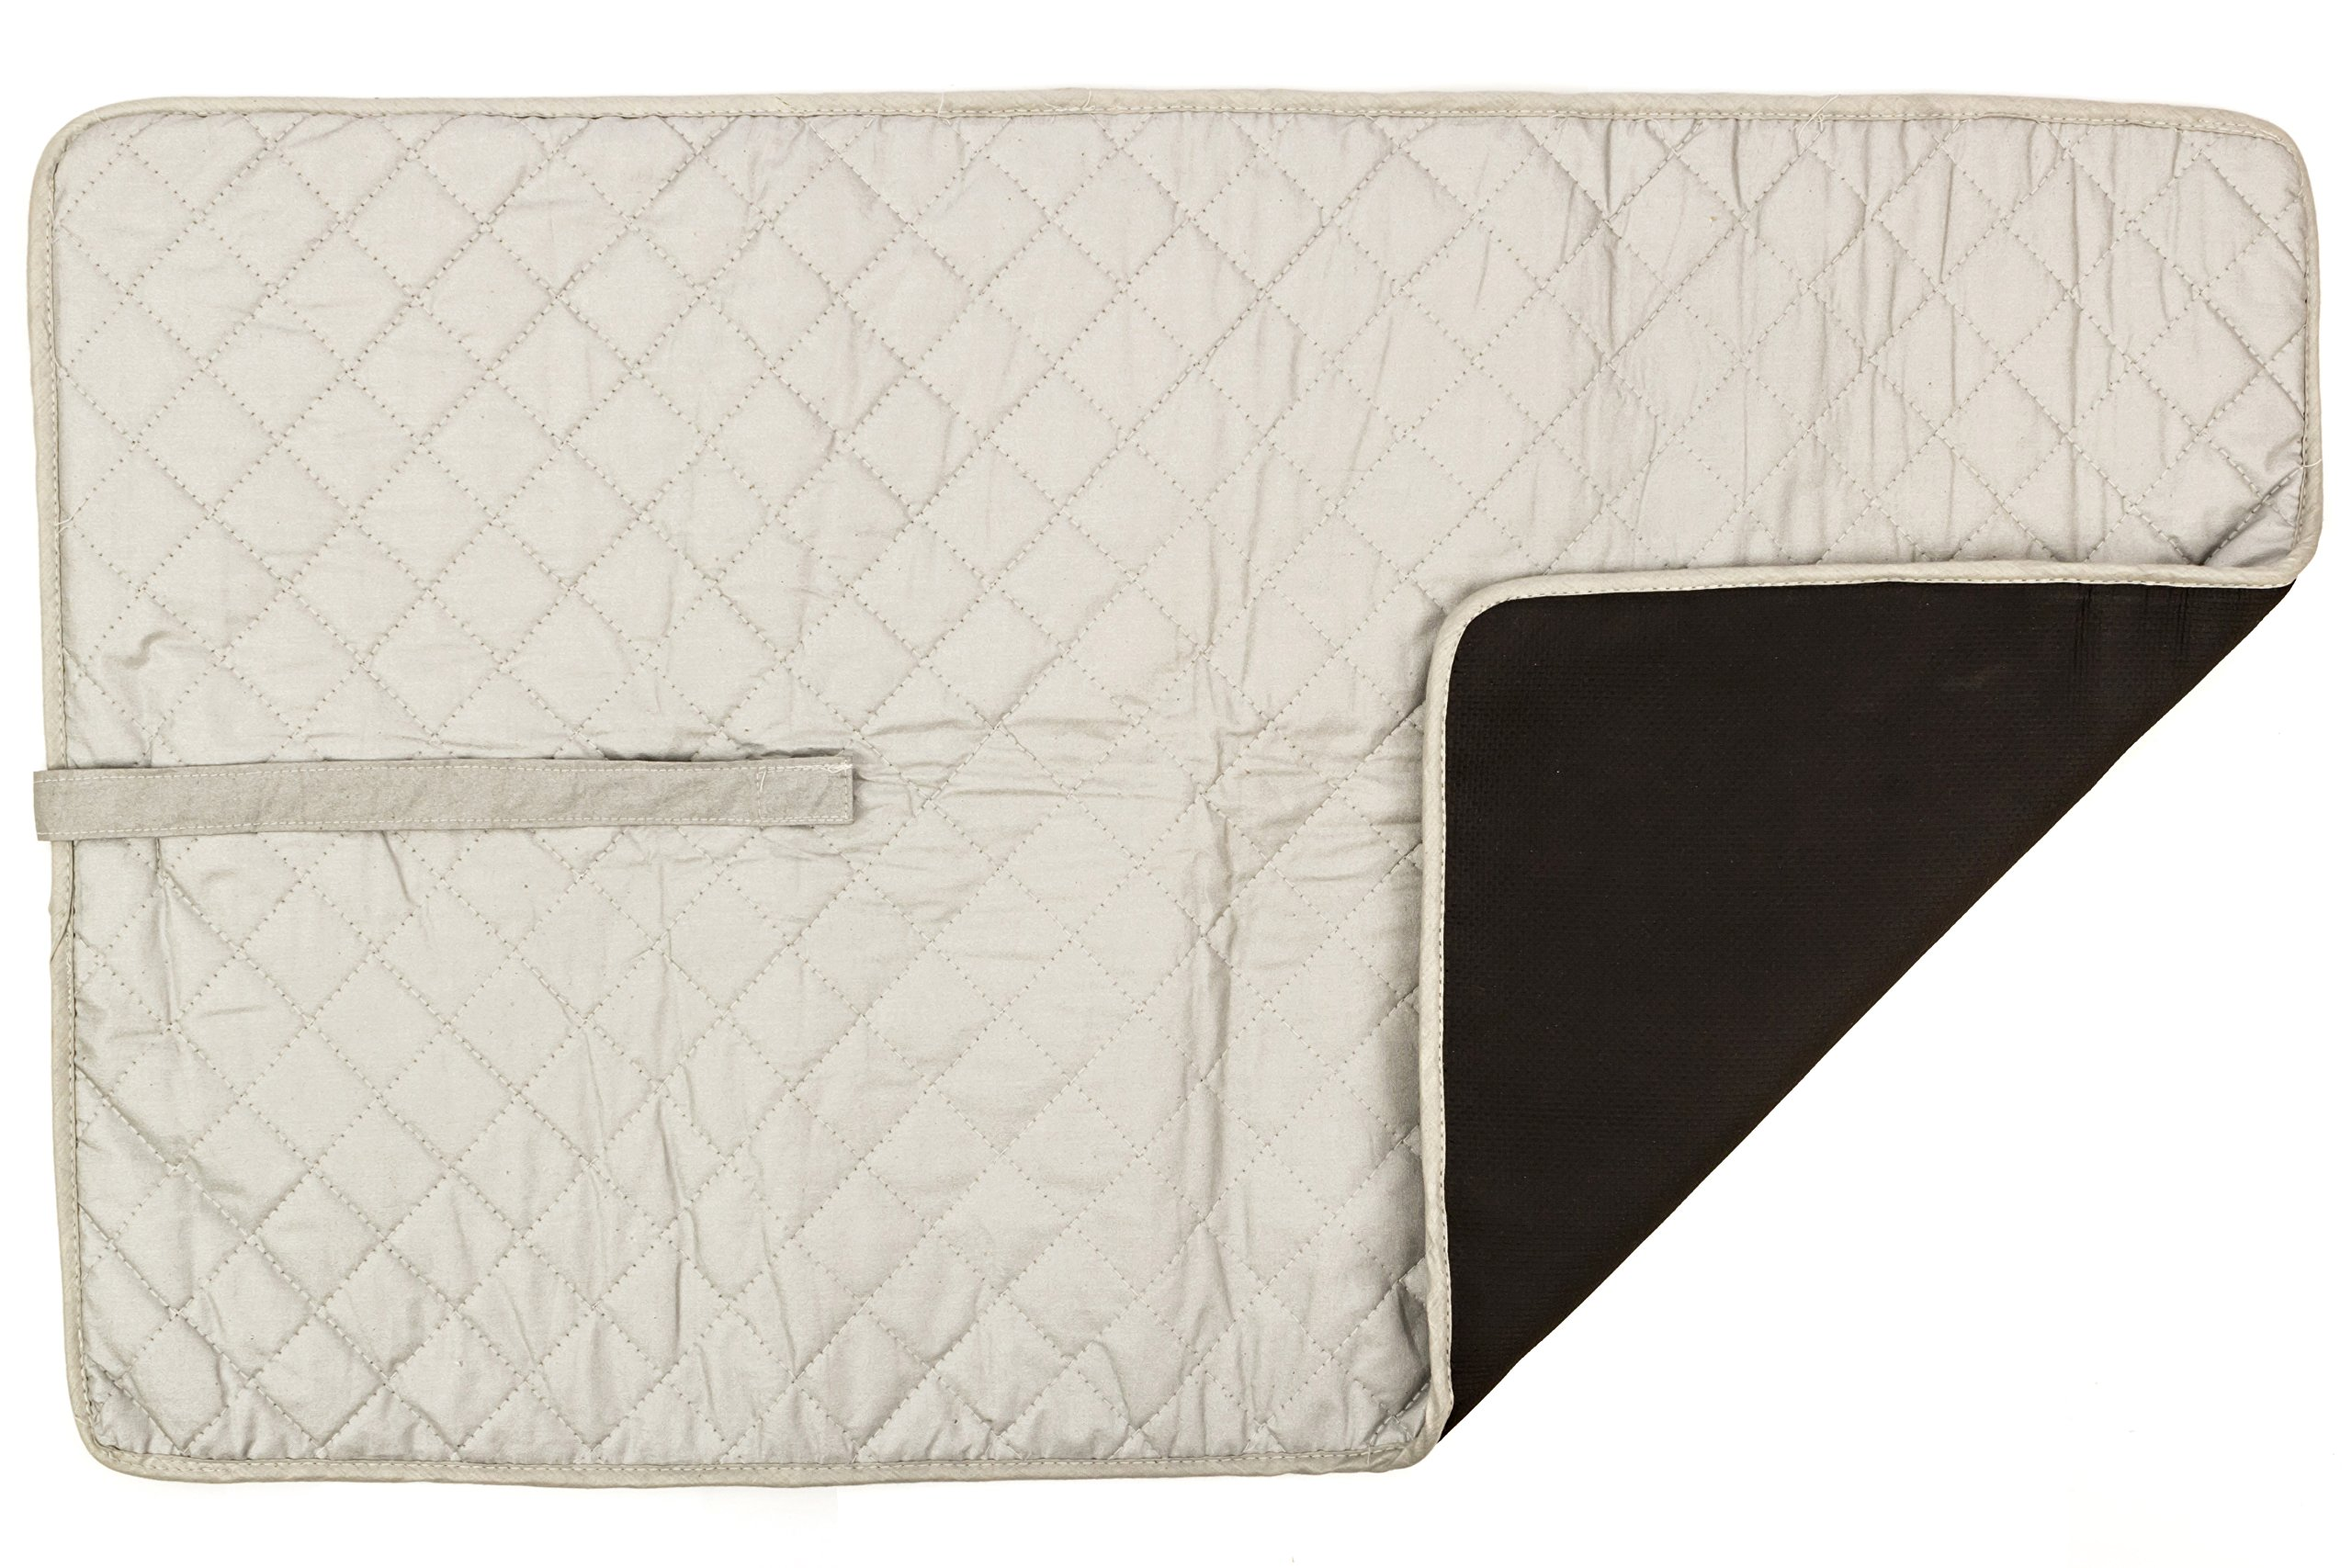 Heat/Moisture Repellent Non Skid Portable Ironing Blanket Mat for Table Top Large for Quilting Sewing and Iron